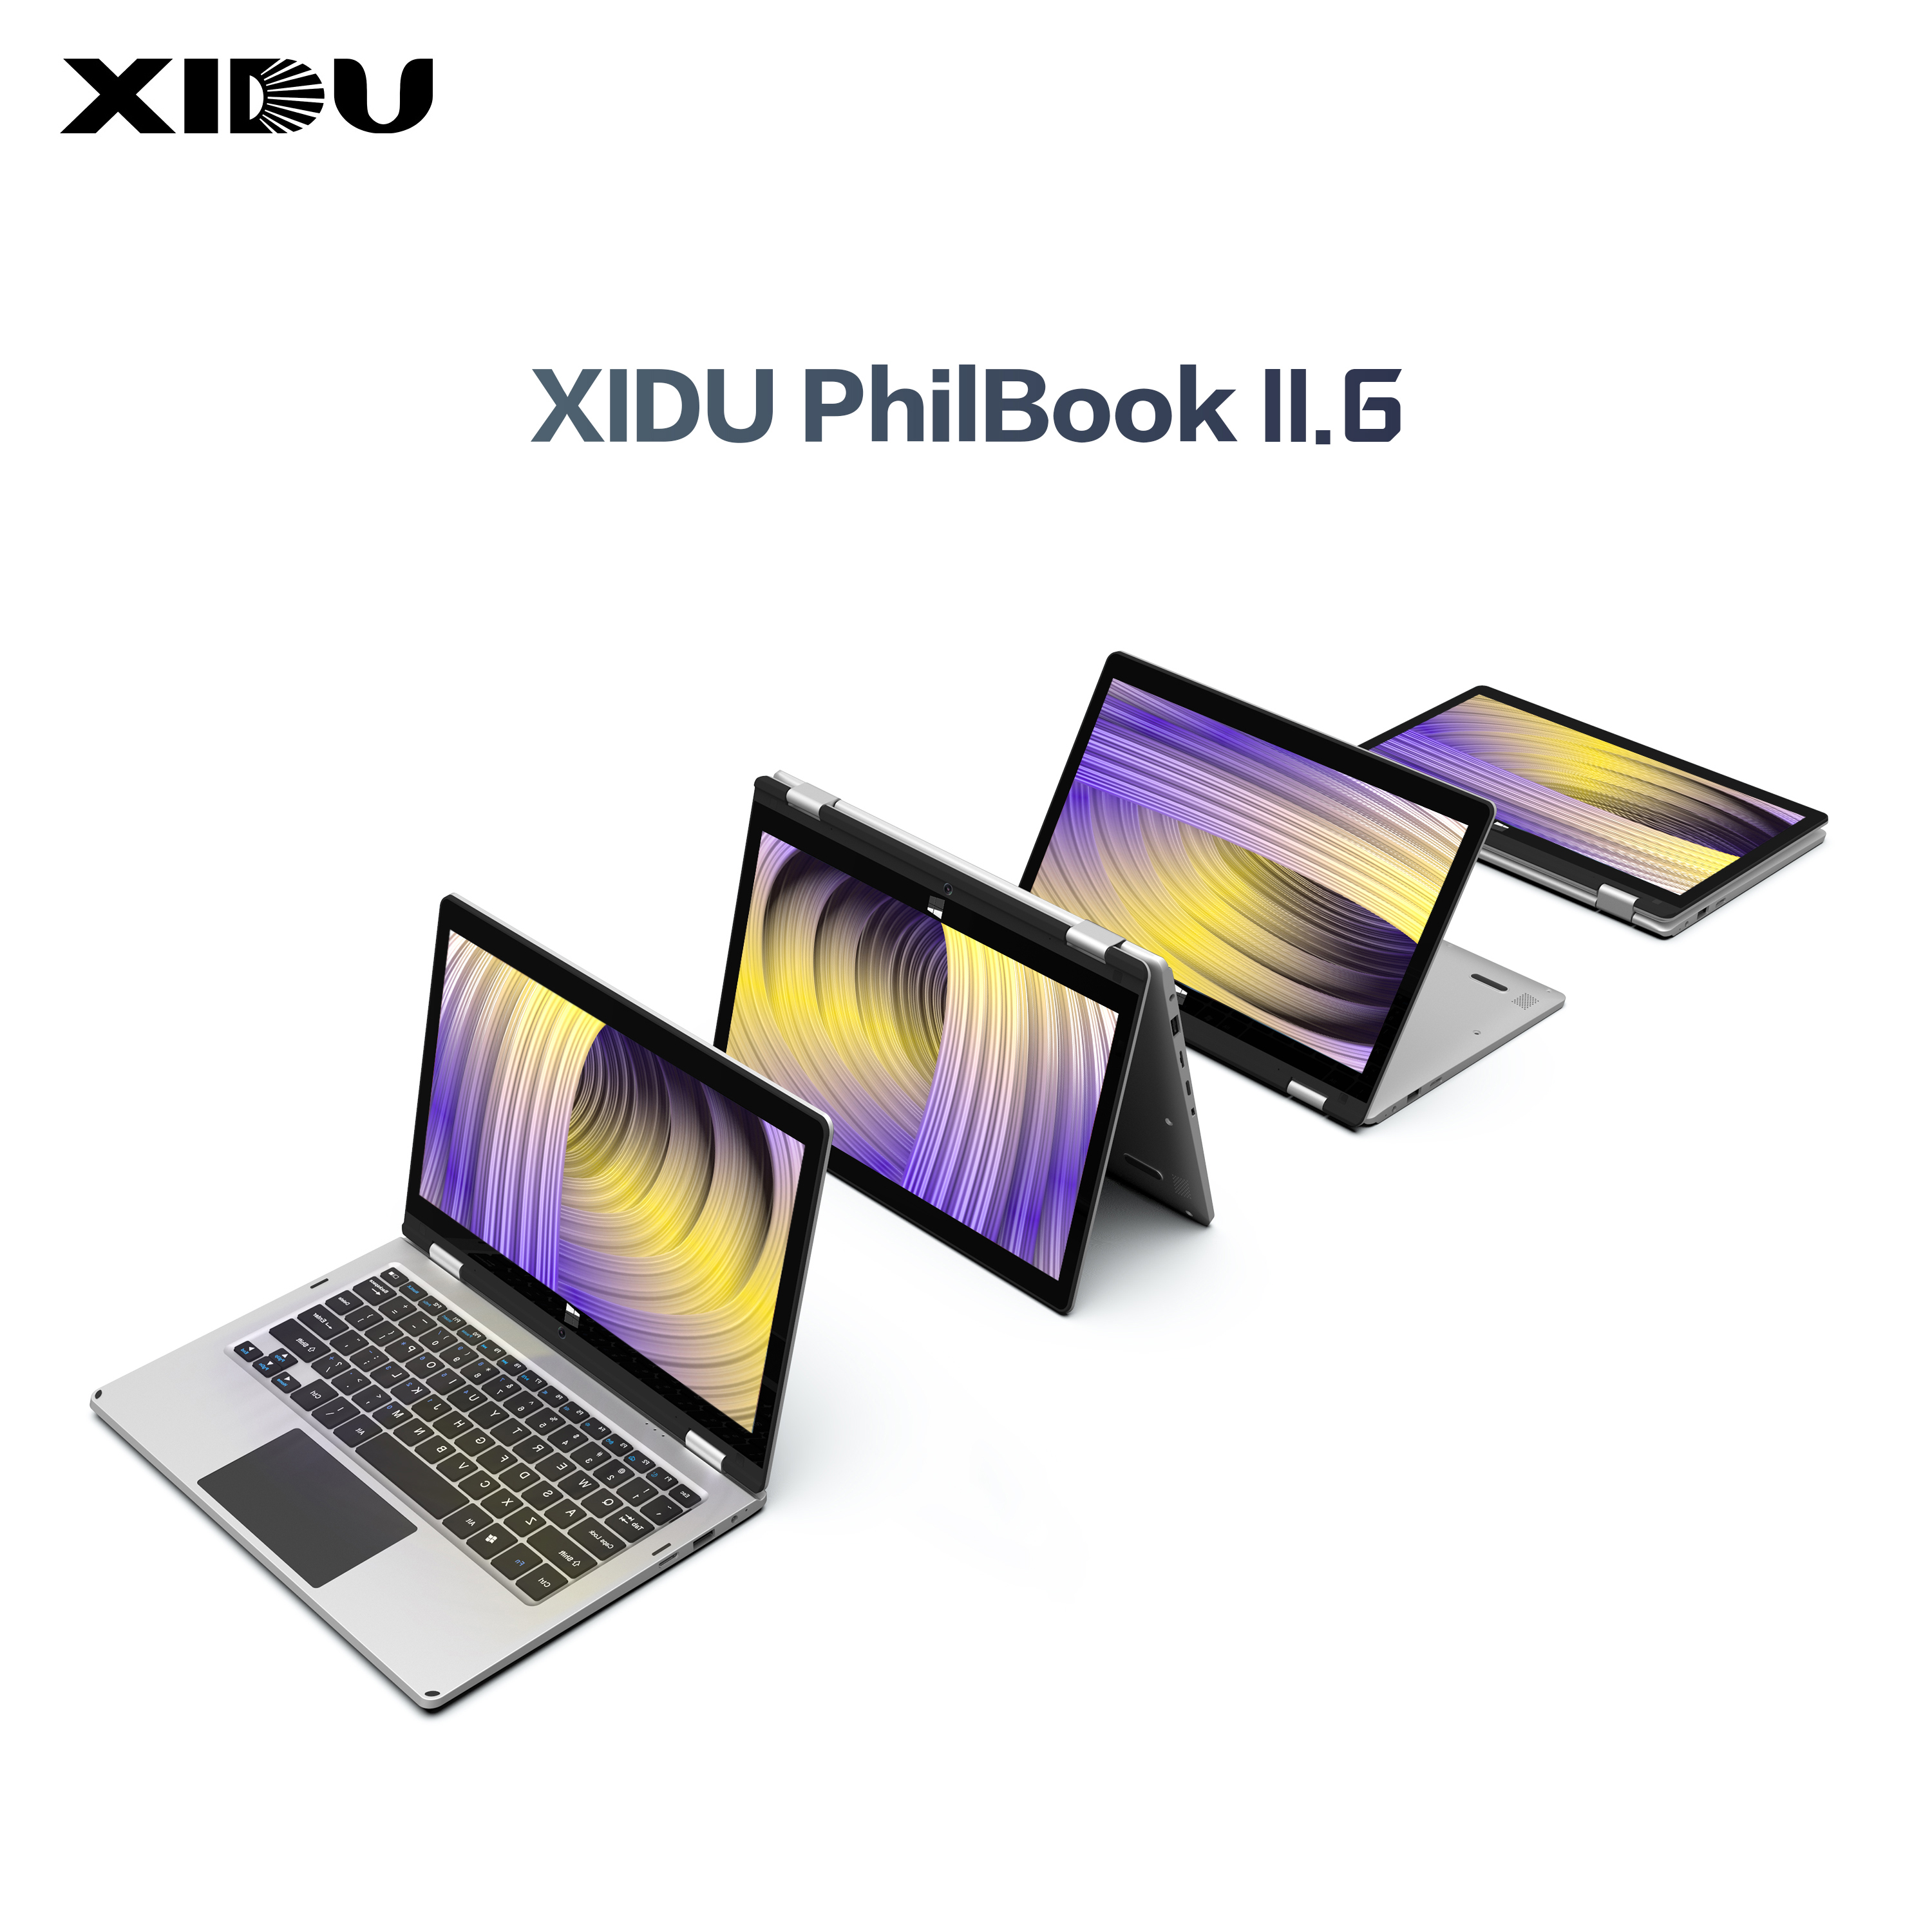 2019 XIDU PhilBook Laptop 11.6 Inch PC Tablet 2 in 1 notebook Touchscreen Windows 10 1080P screen Quad Core image